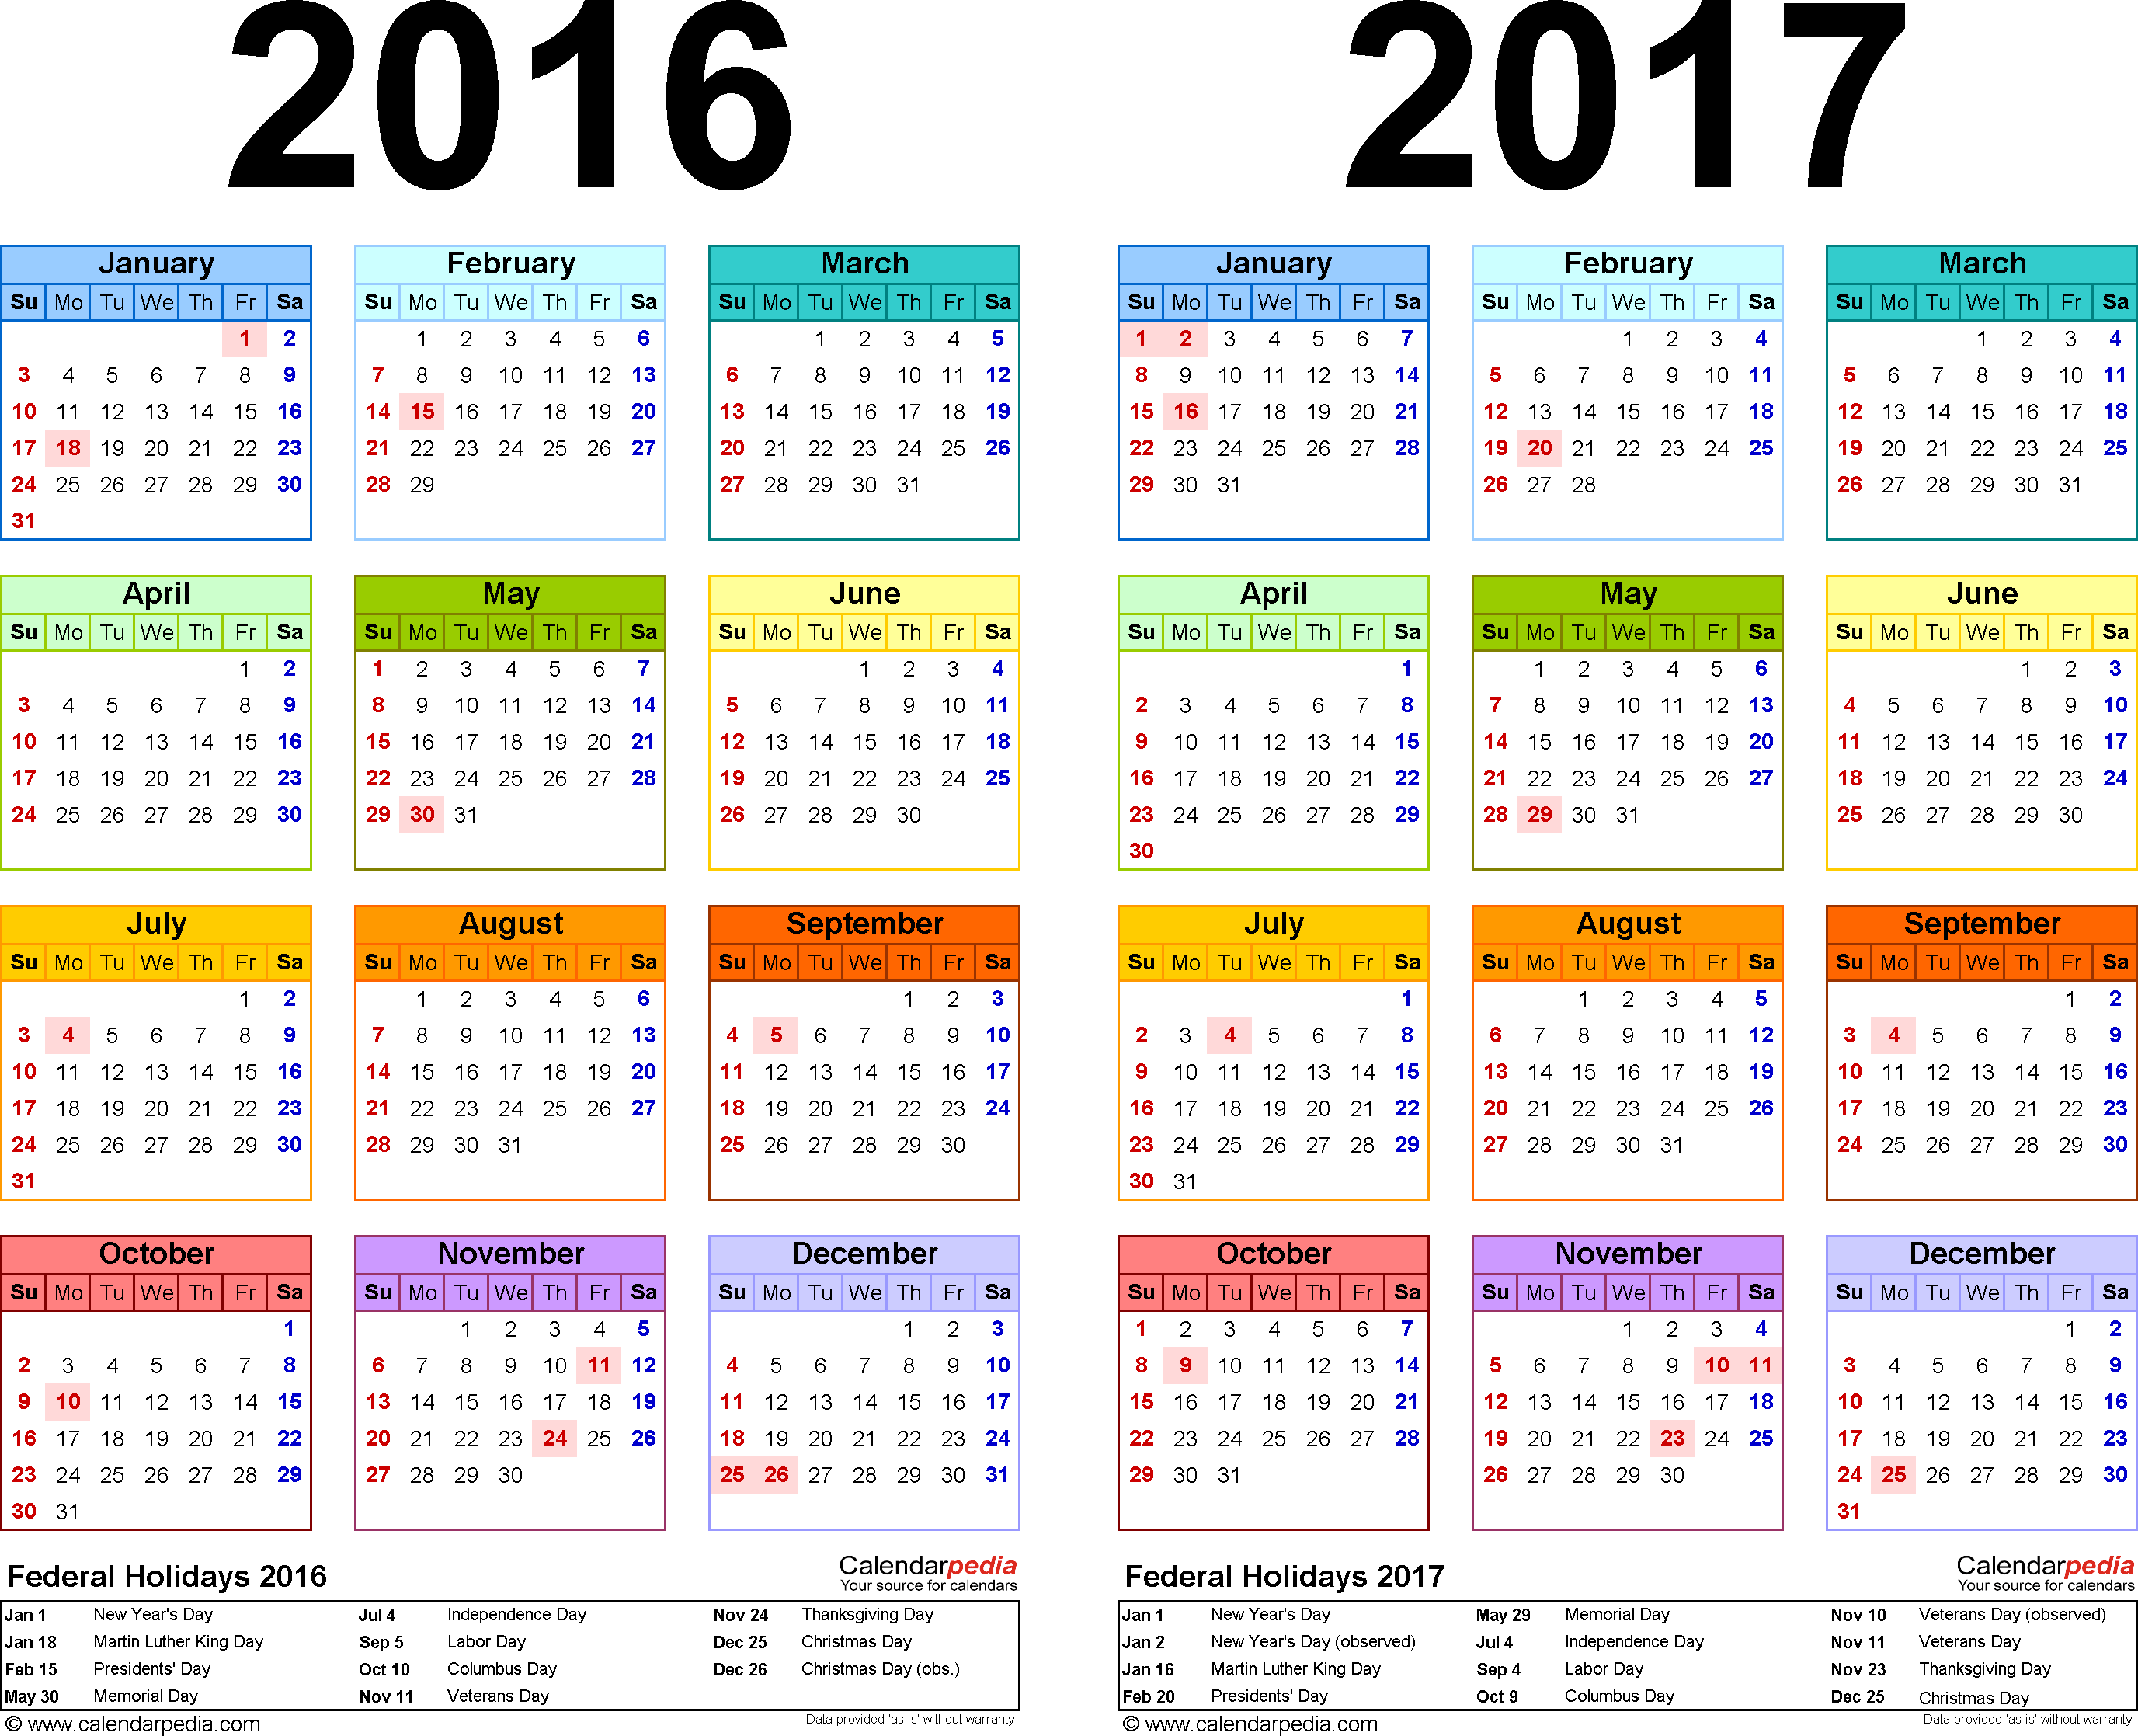 Template 2: Excel template for two year calendar 2016/2017 (landscape orientation, 1 page, in color)